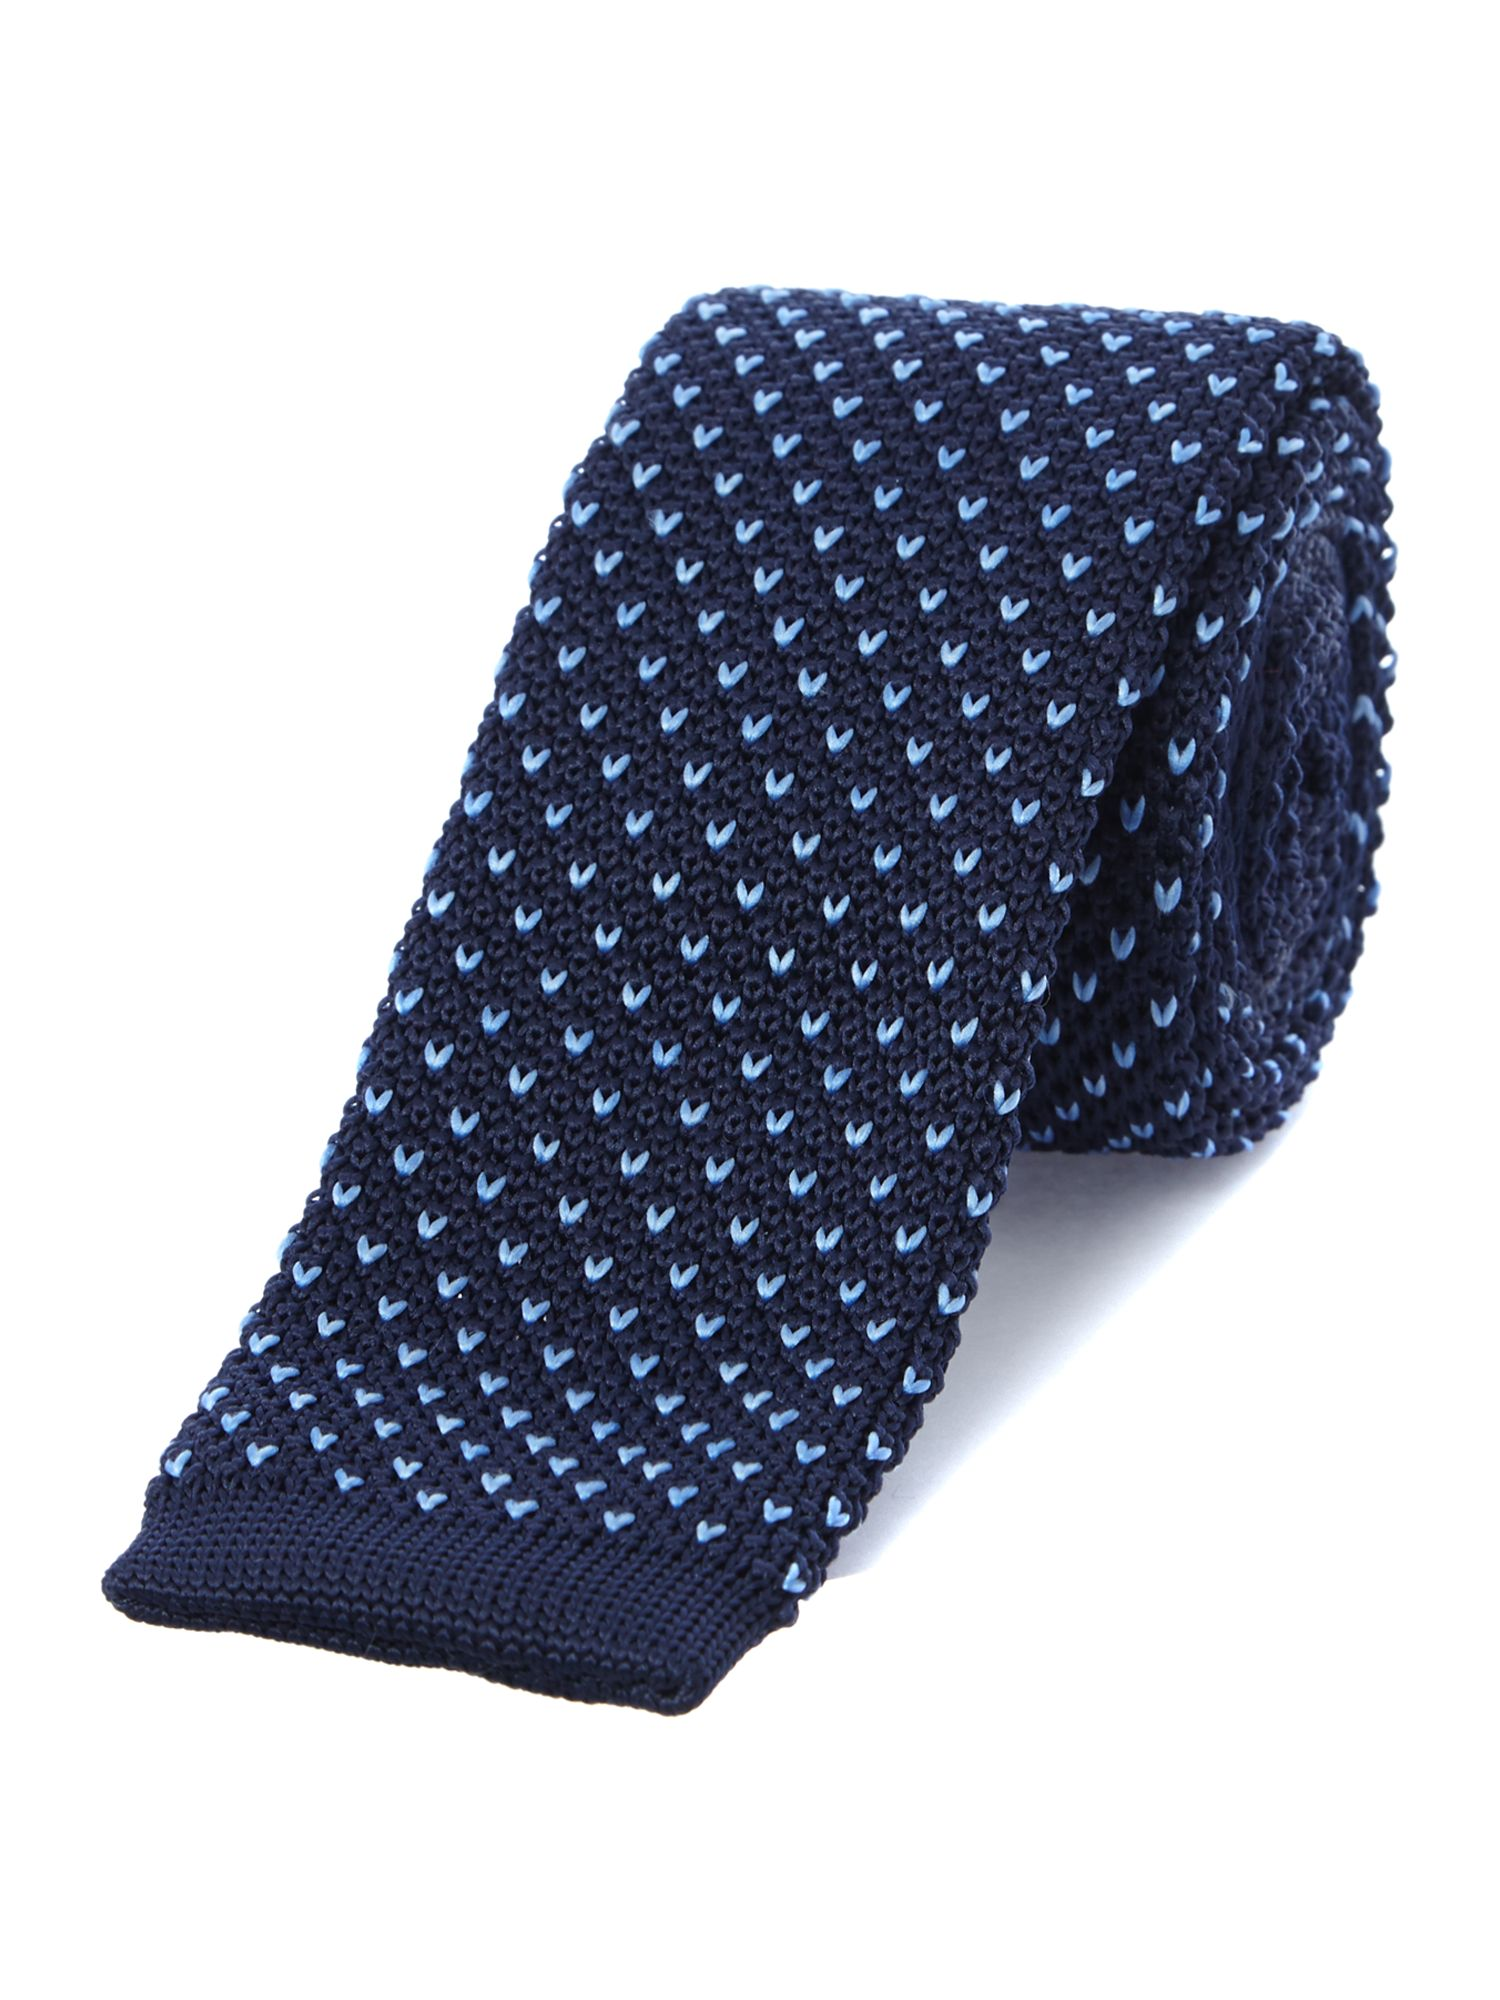 Blunt ended knitted tie